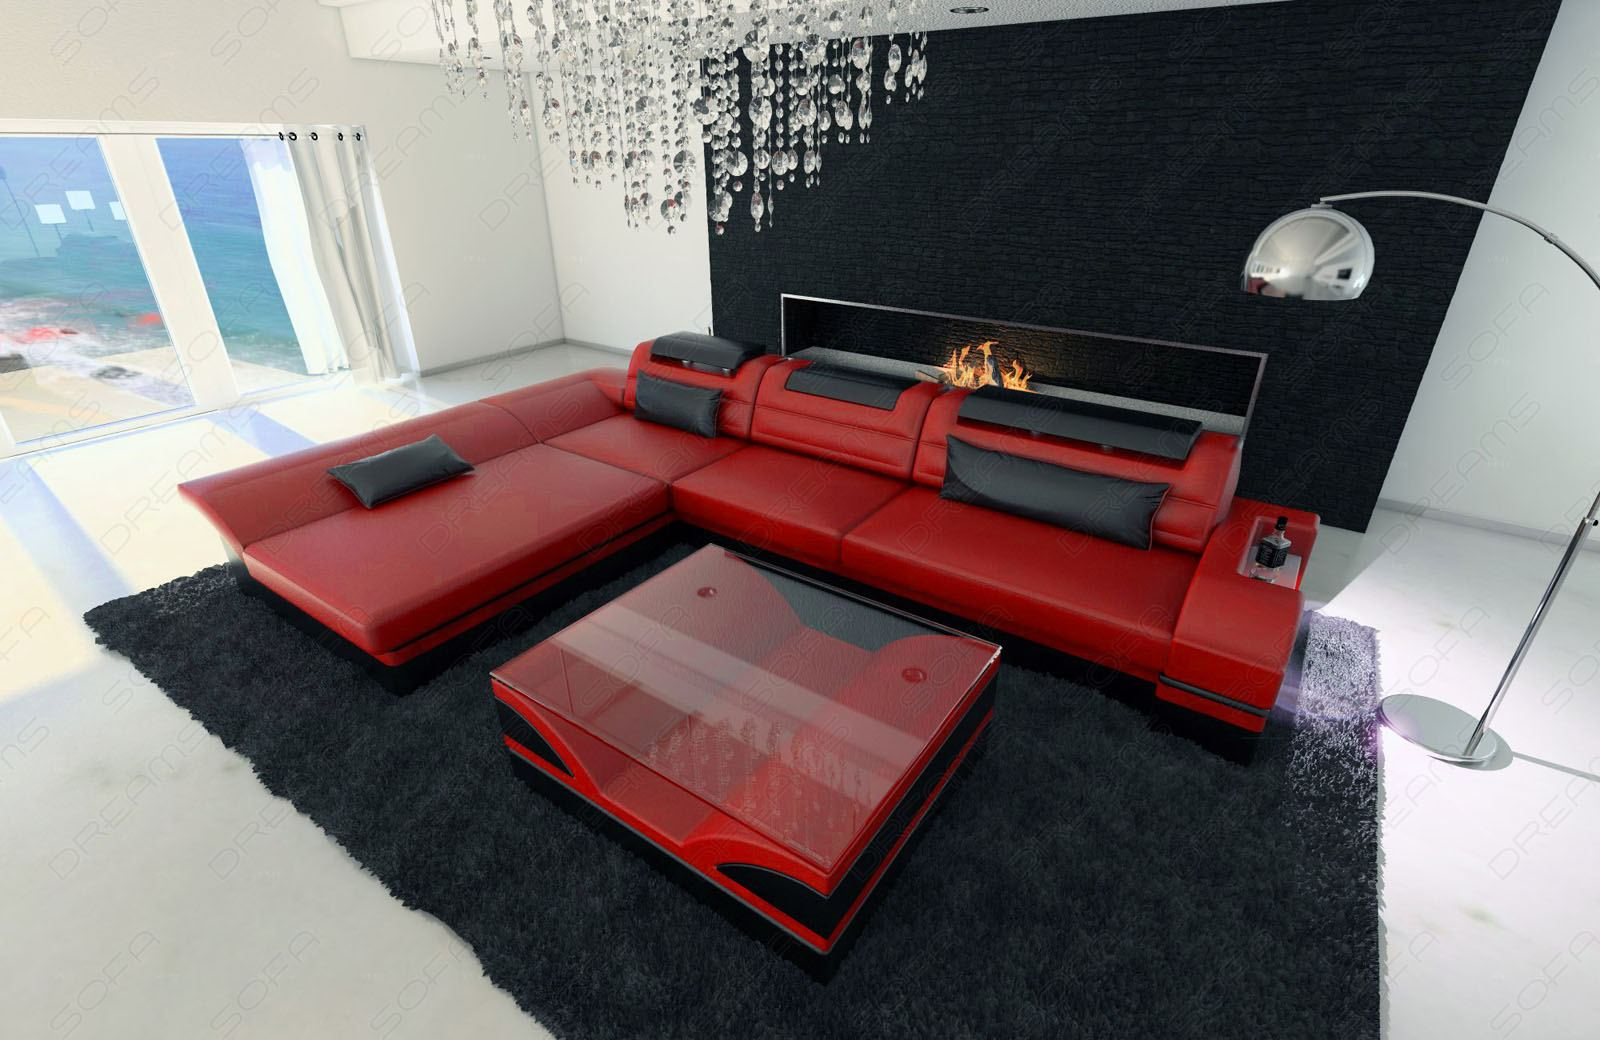 ledersofa monza l form rot schwarz sofa mit led beleuchtung. Black Bedroom Furniture Sets. Home Design Ideas